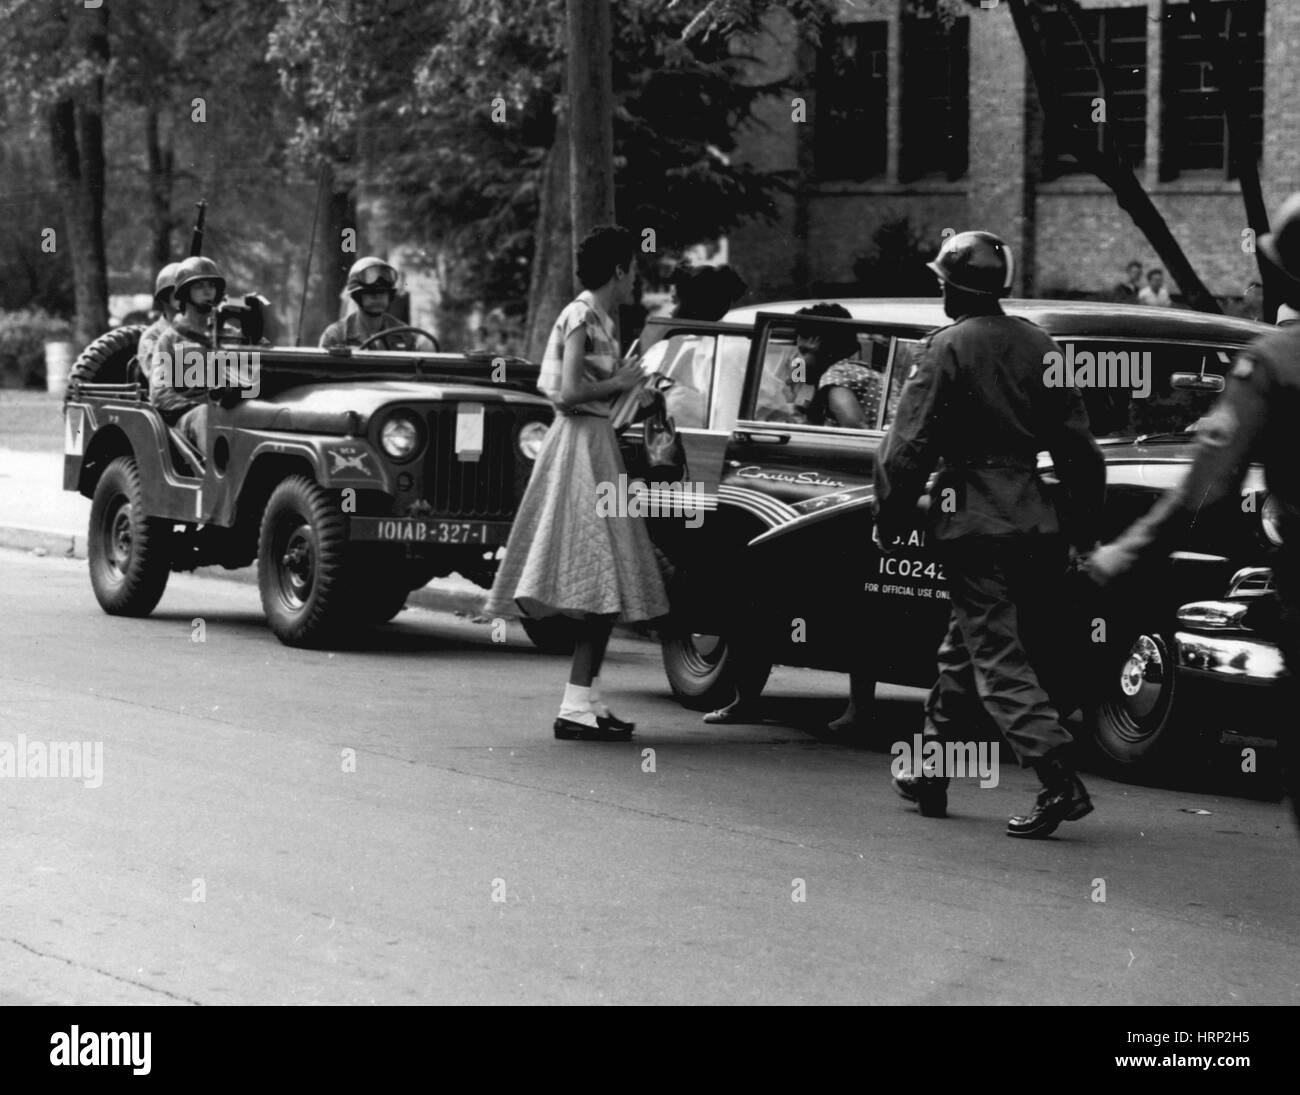 Operation Arkansas, Little Rock Nine, 1949 - Stock Image